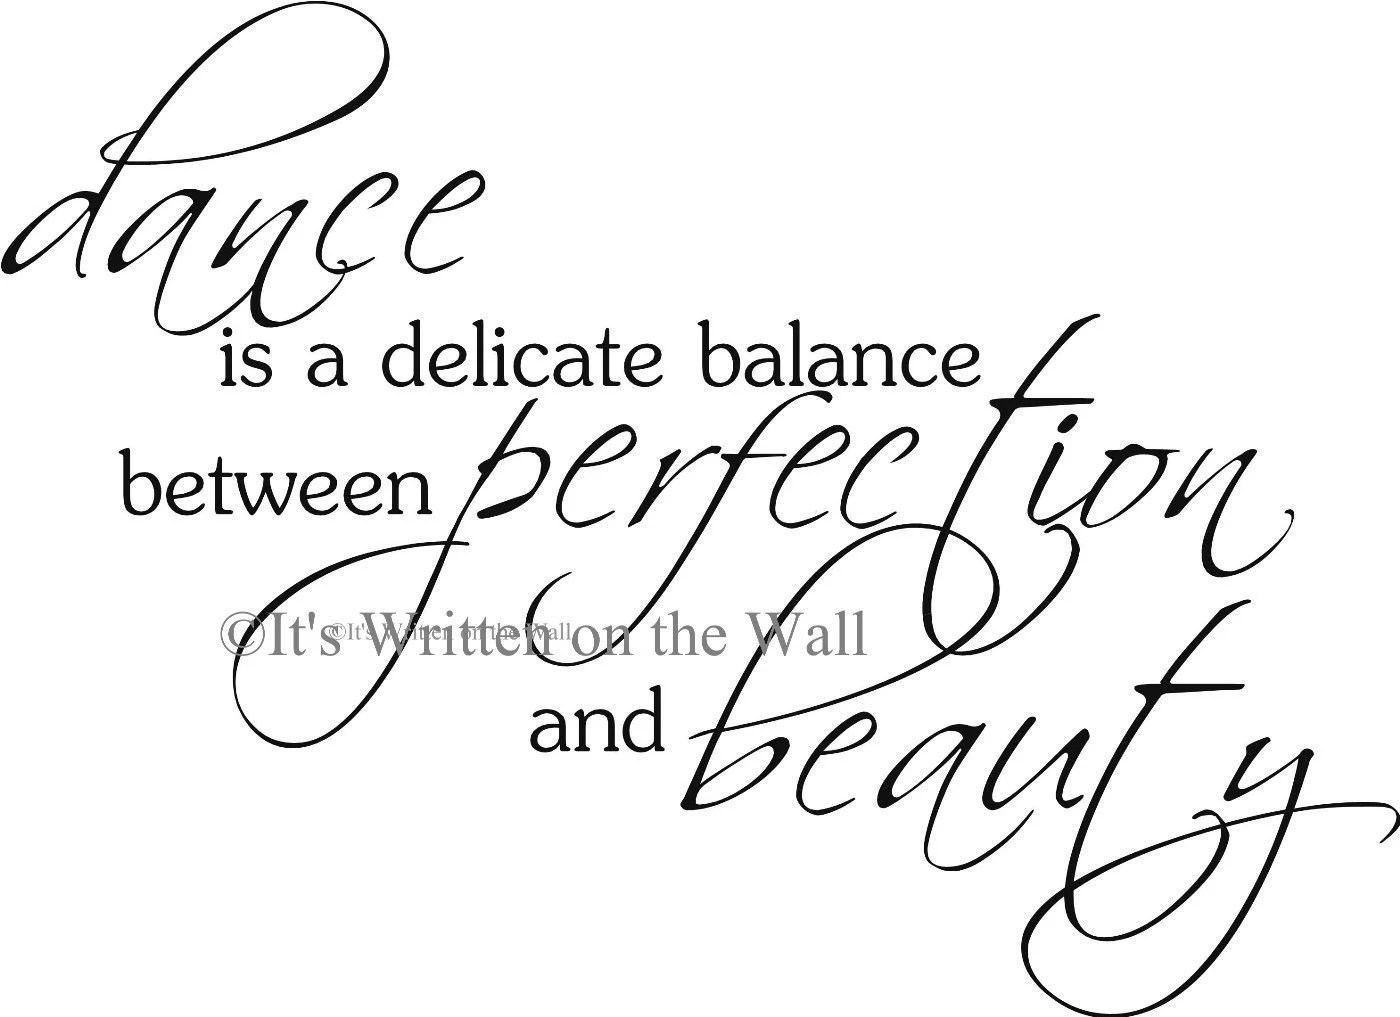 Dance Is a Delicate Balance Between Perfection and Beauty